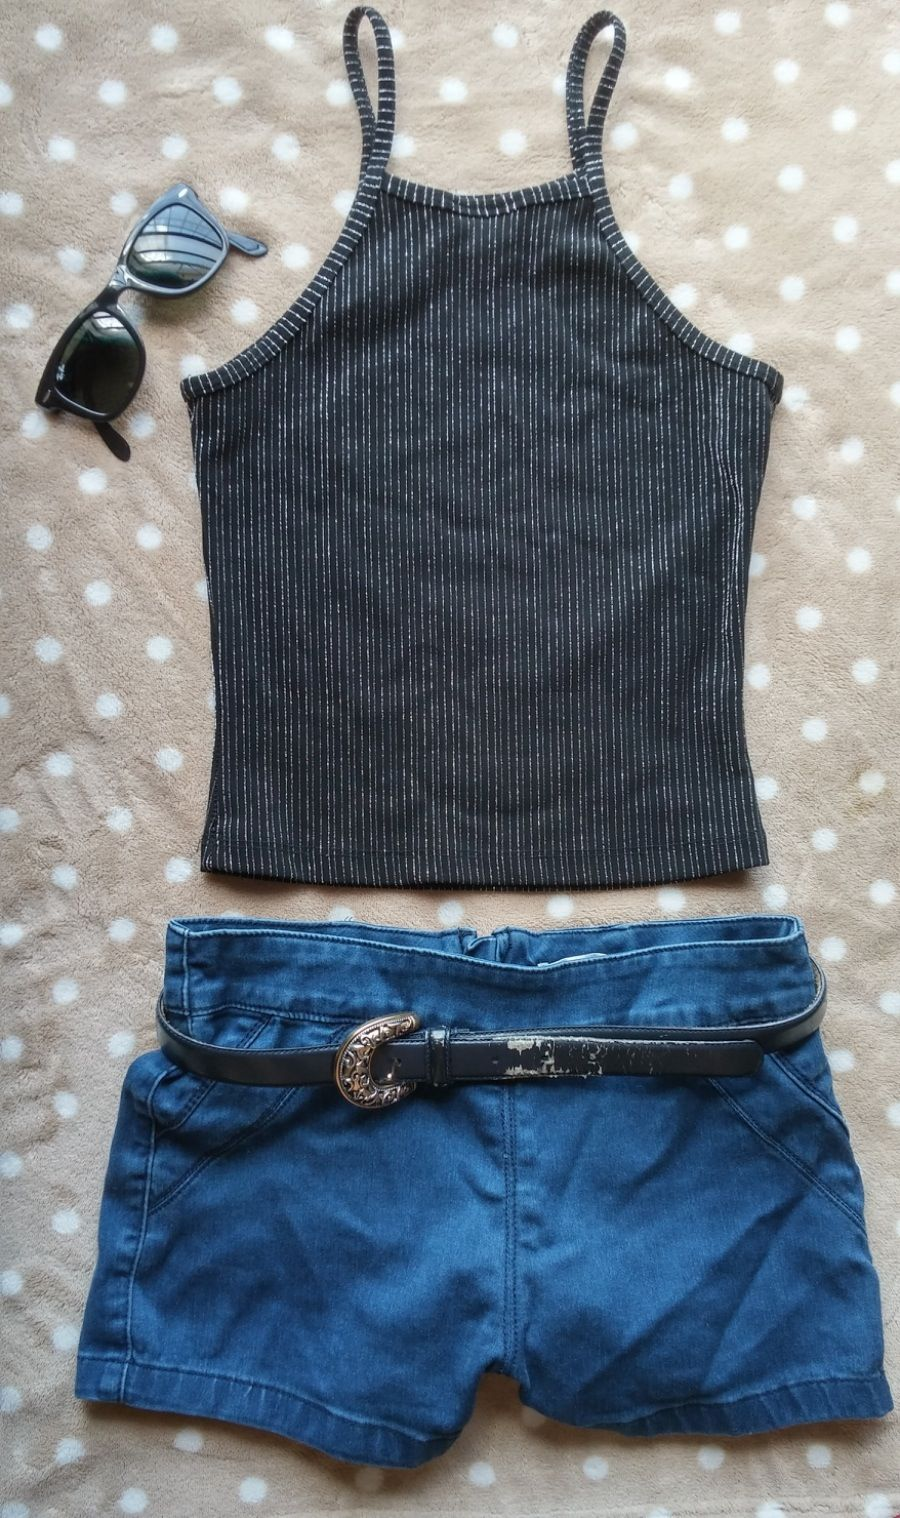 Vintage 1990s crop top blouse tank top *SMALL